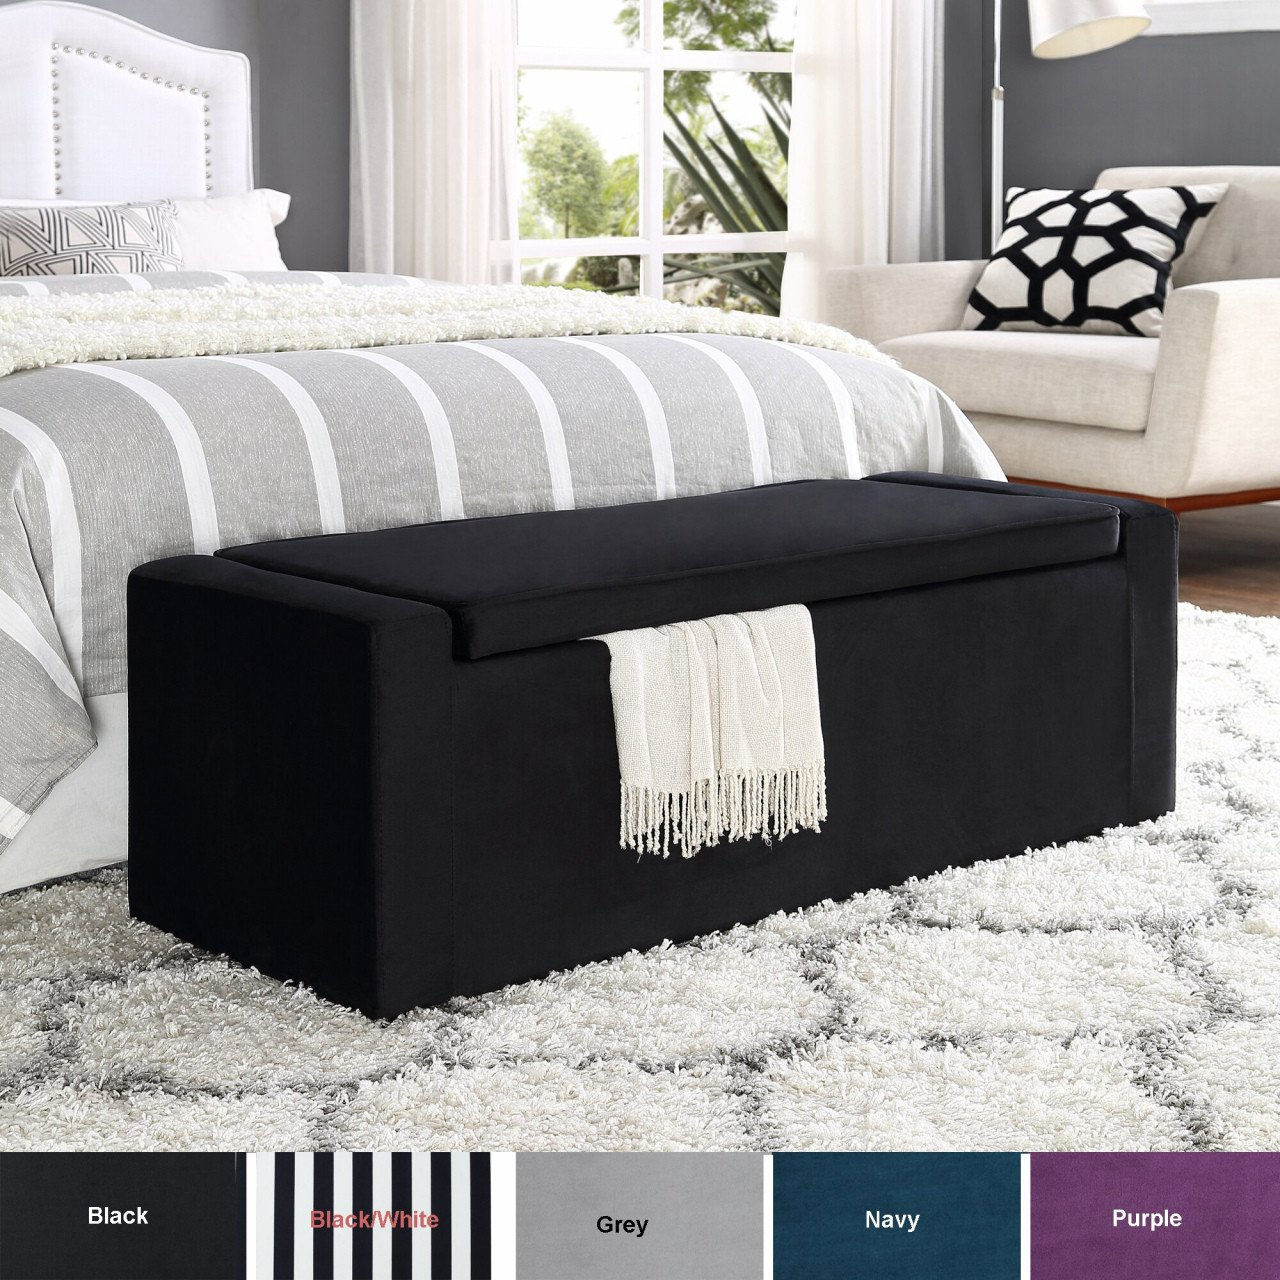 Small Storage Bench for Bedroom Elegant Small Entryway Storage Bench Amazon Vasagle Industrial